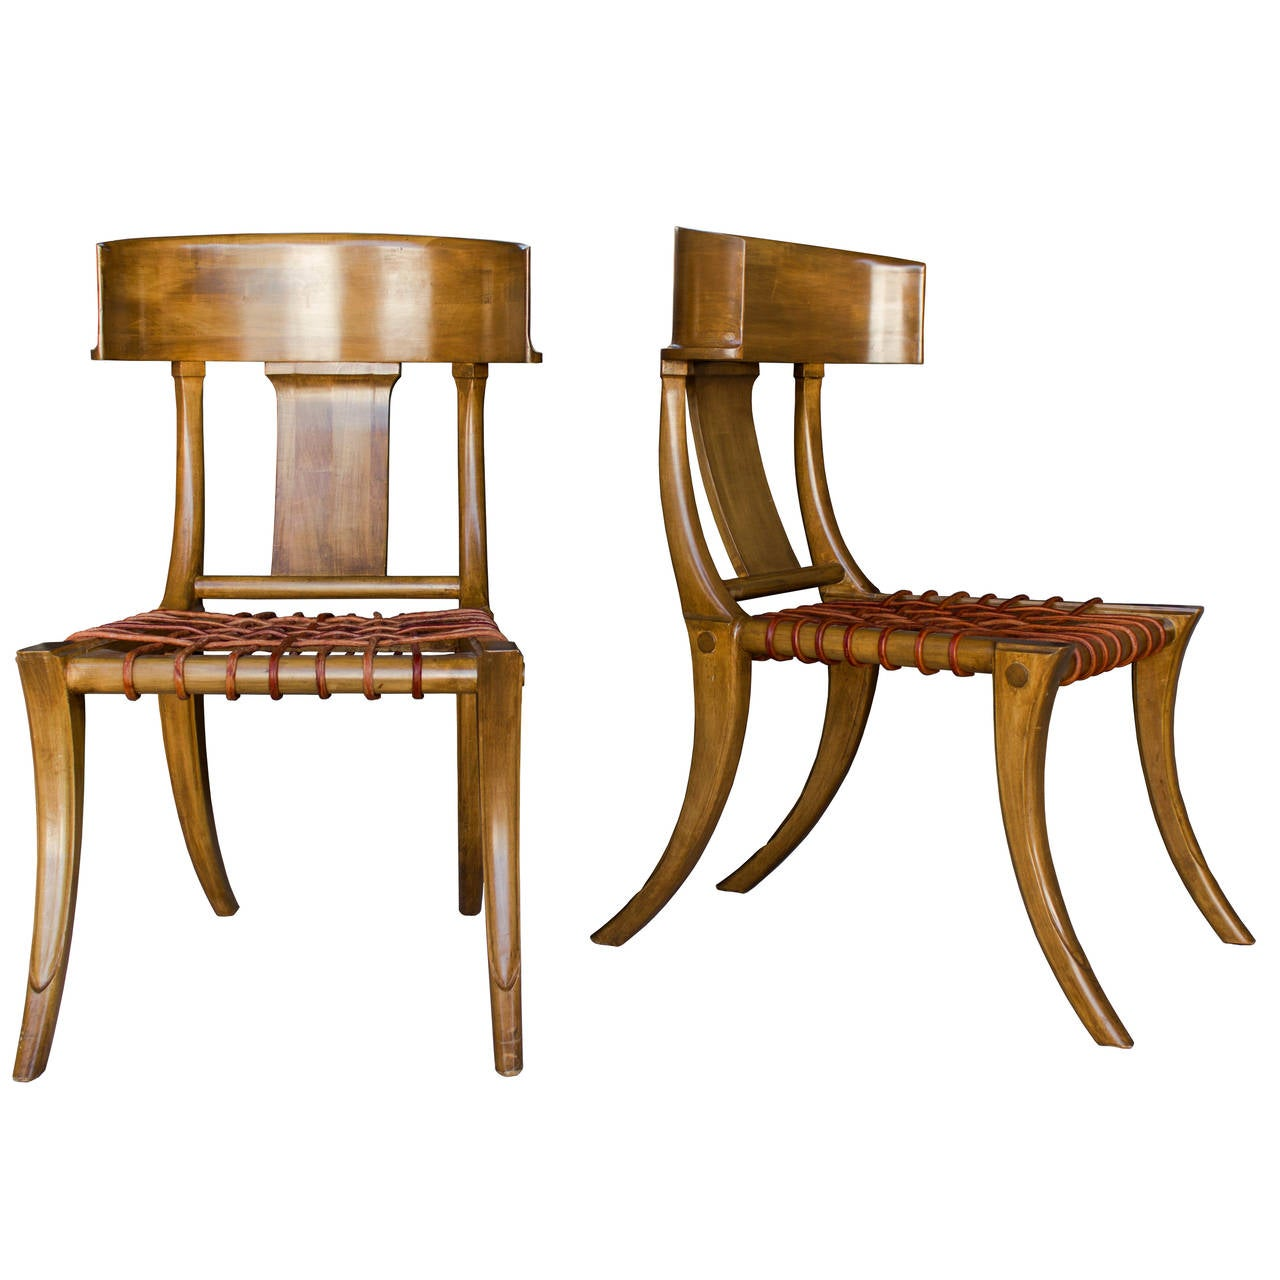 Klismos Chair Handsome Pair Of Klismos Chairs By Kreiss At 1stdibs